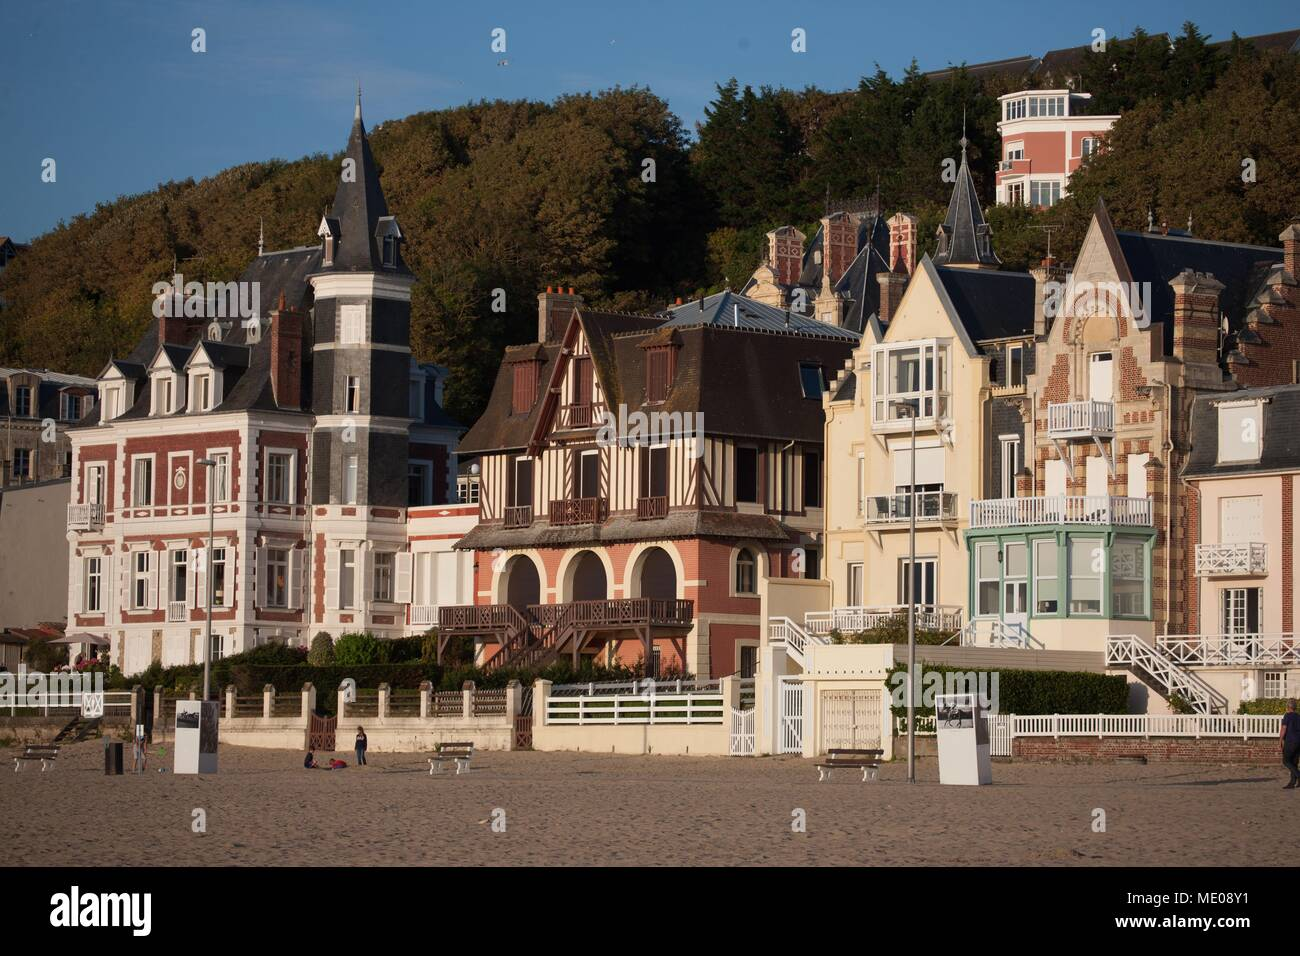 France, Normandy Region, Former Lower Normandy, Pays Du0027Auge, Côte Fleurie,  Trouville Sur Mer, Villas On The Seafront, Cliff And Trouville Heights